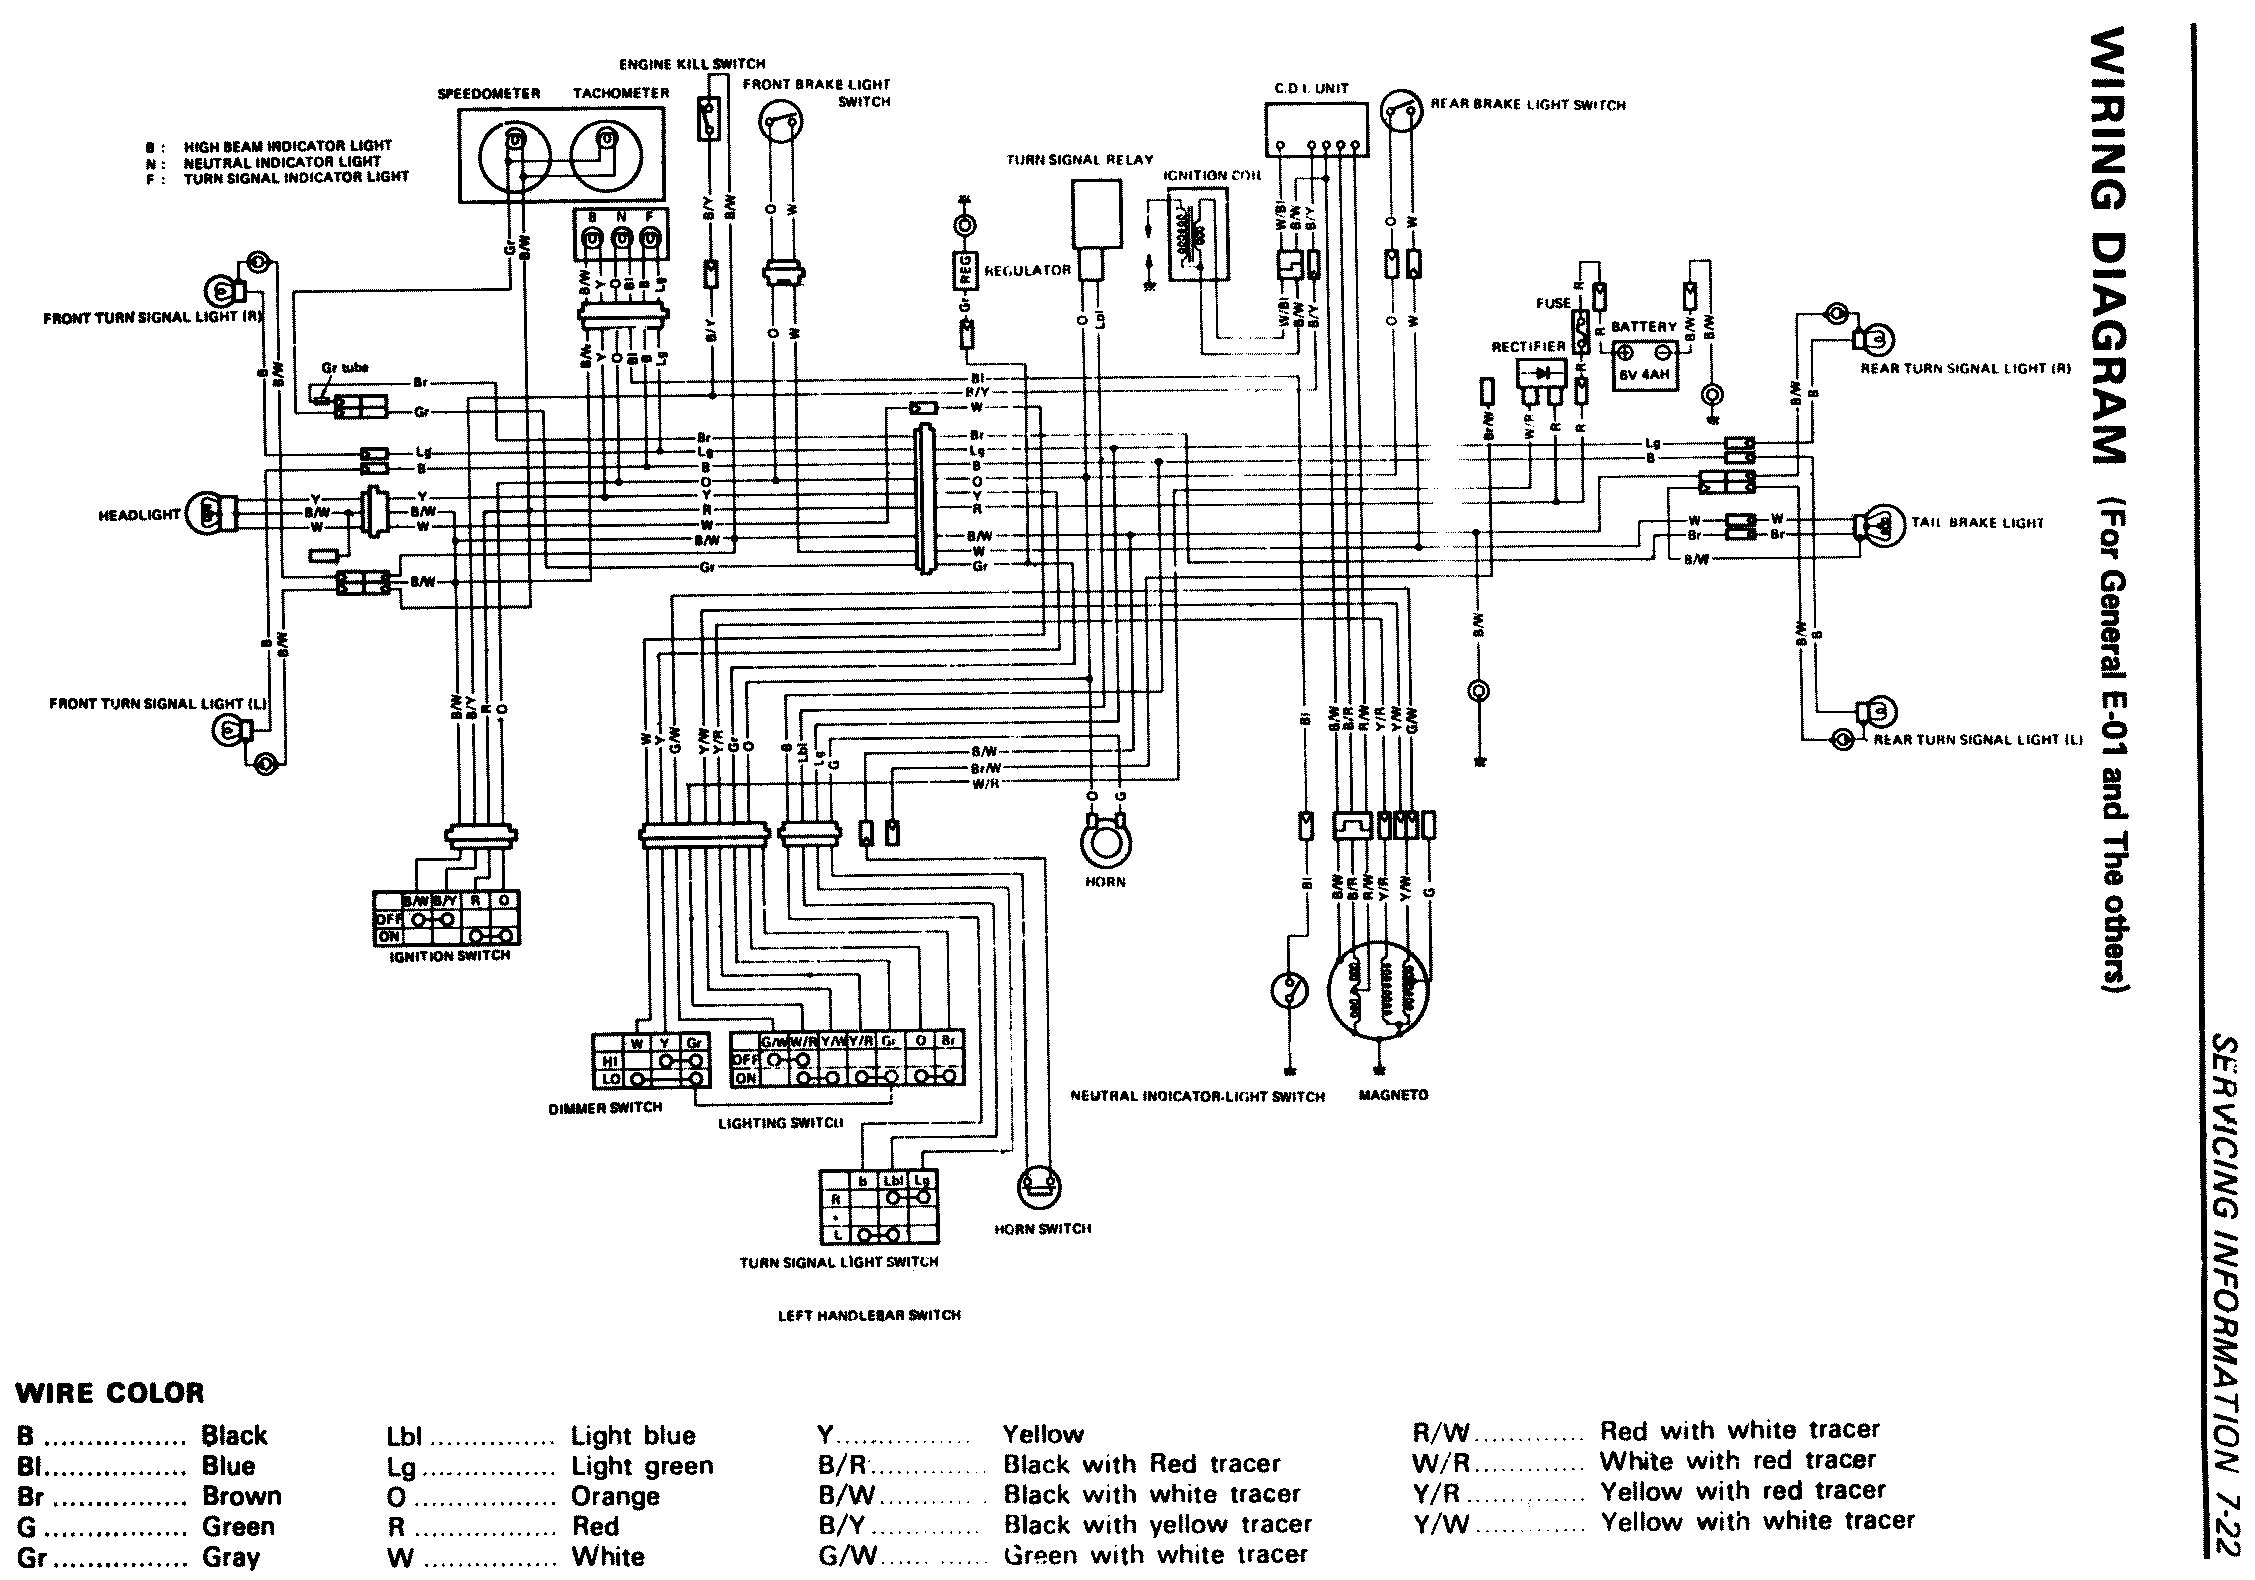 1982 Suzuki Gs850 Wiring Diagram 1980 Ts250 Wire Diagrams Of